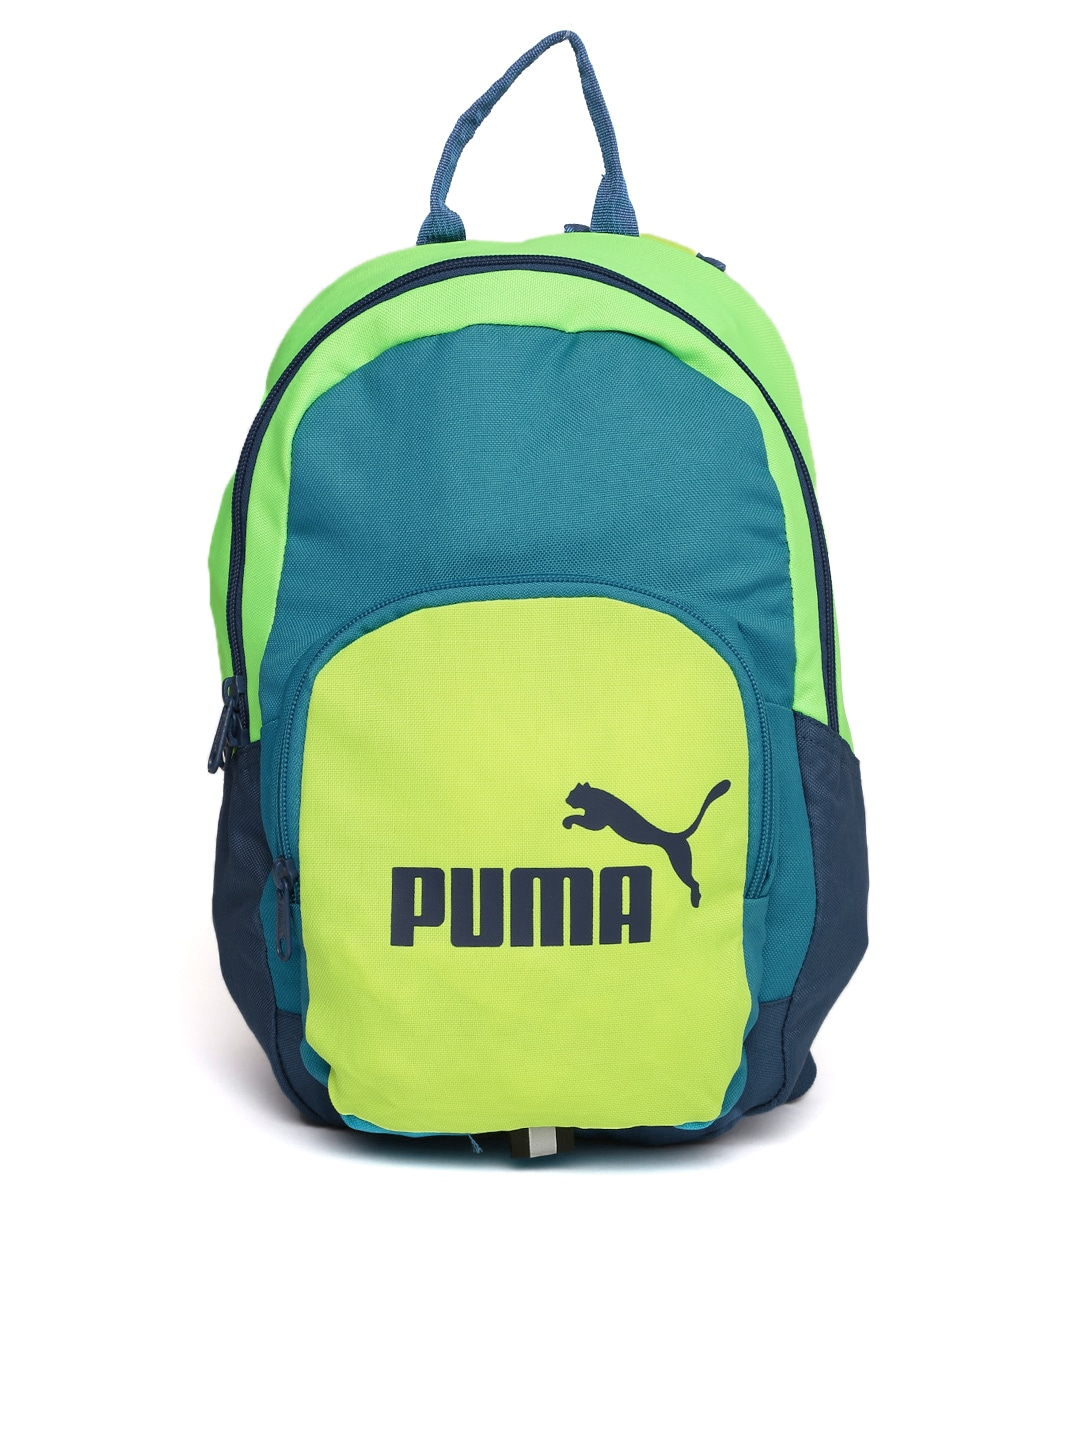 Puma Small Backpacks - Buy Puma Small Backpacks online in India 931acbc2b28f8